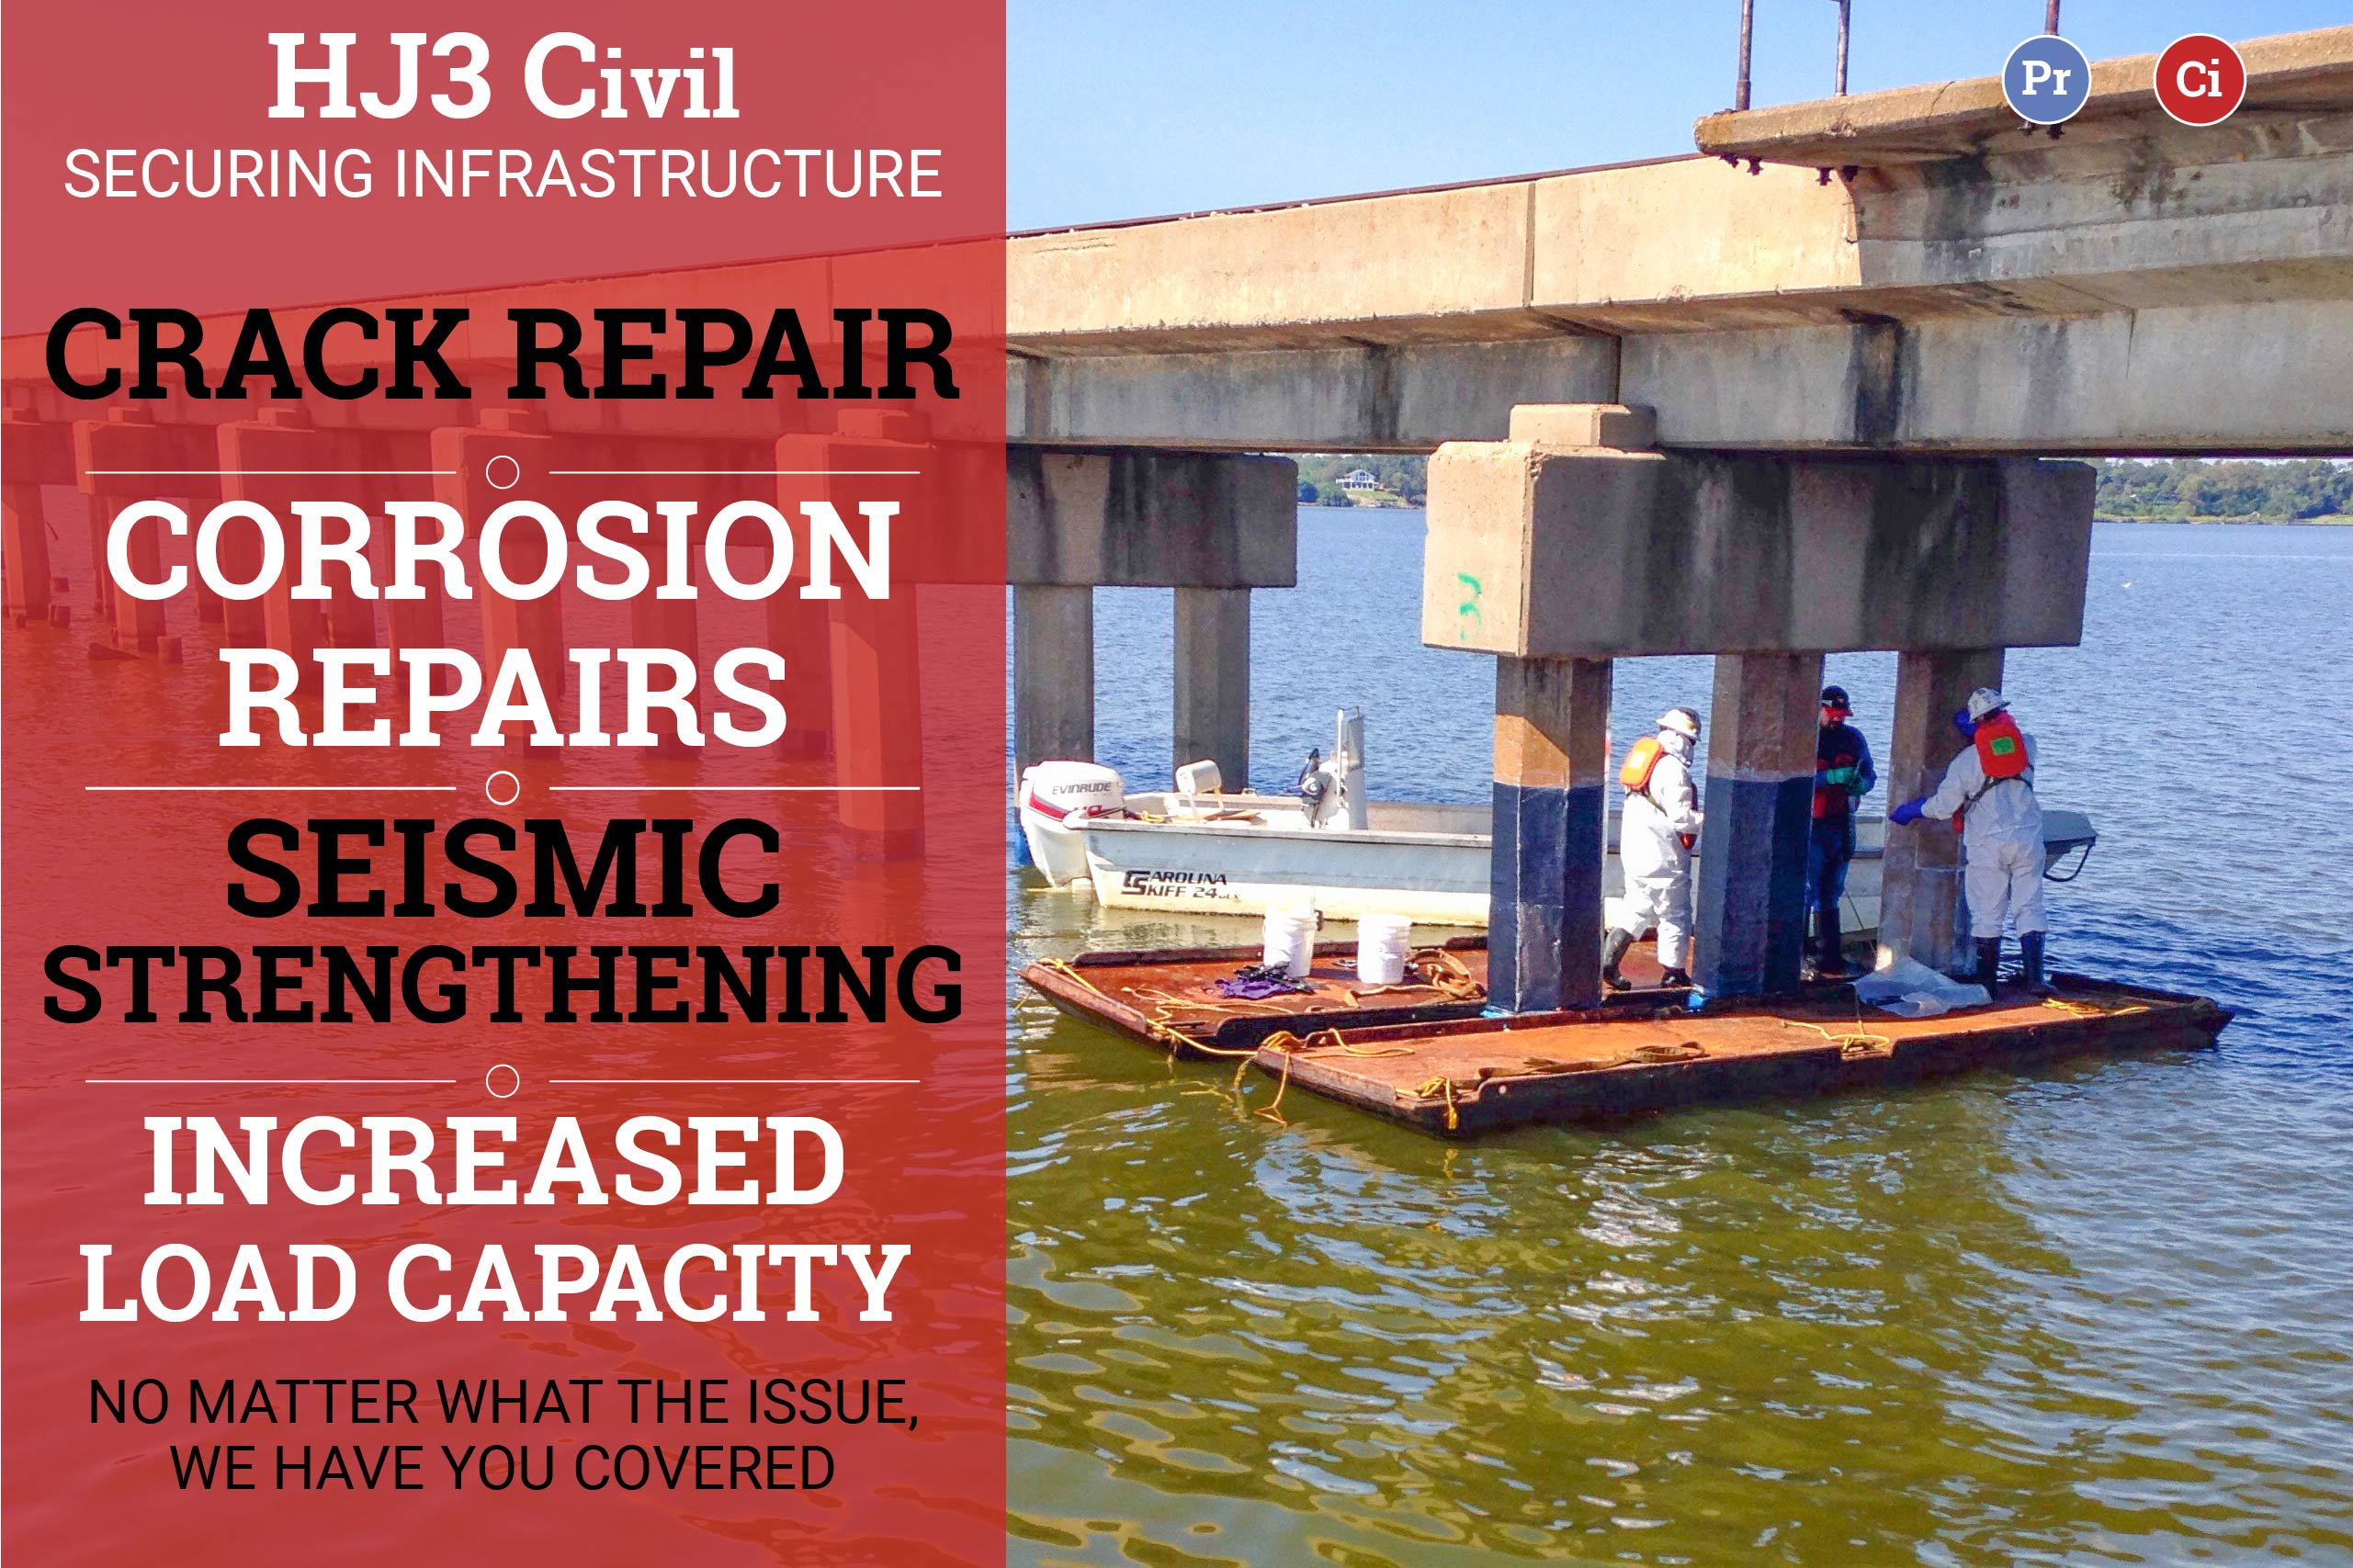 HJ3 Civil benefits and repairs: corrosion repairs - seismic strengthening - increased load capacity